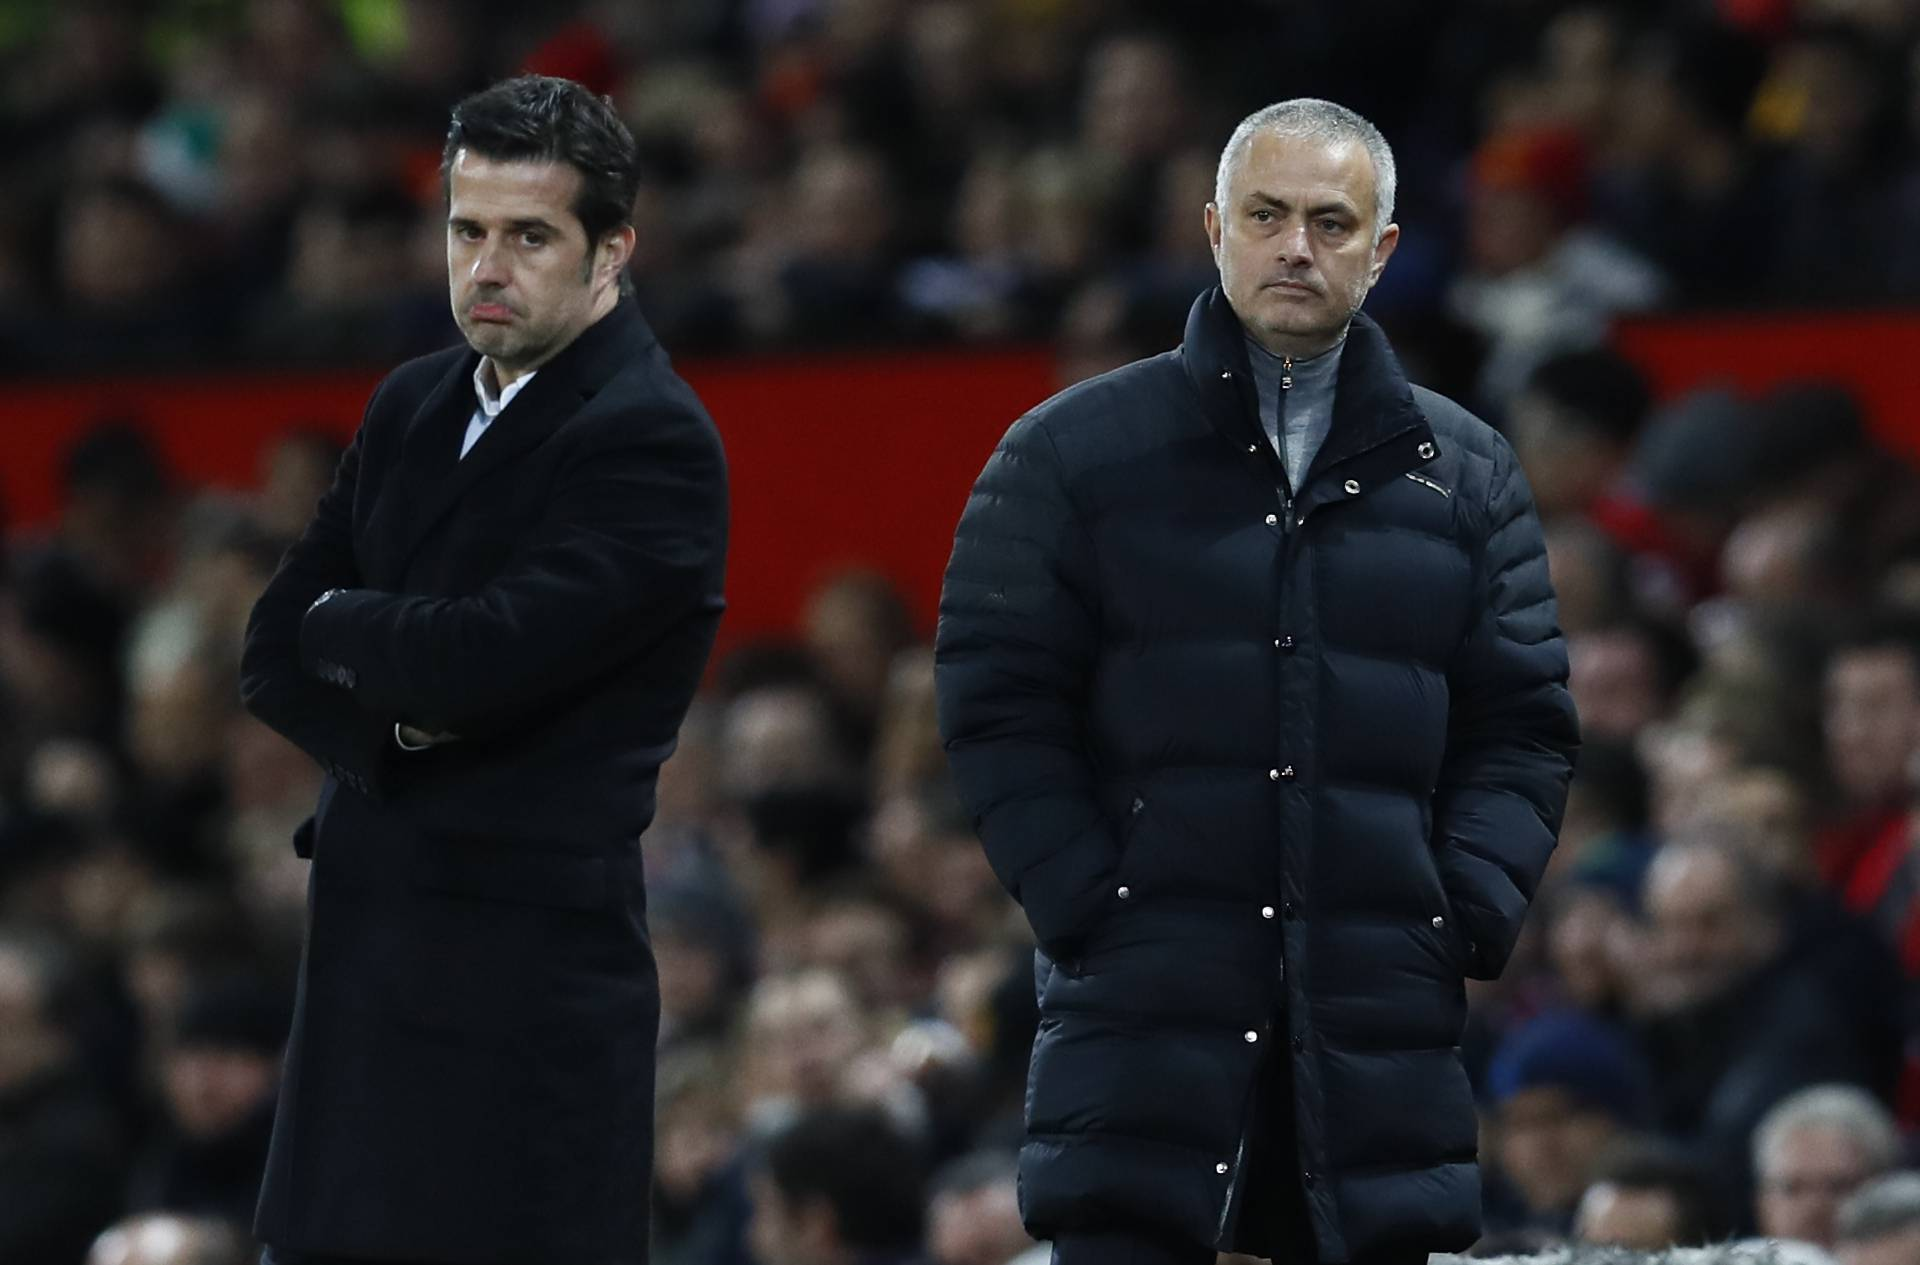 Manchester United manager Jose Mourinho and Hull City manager Marco Silva